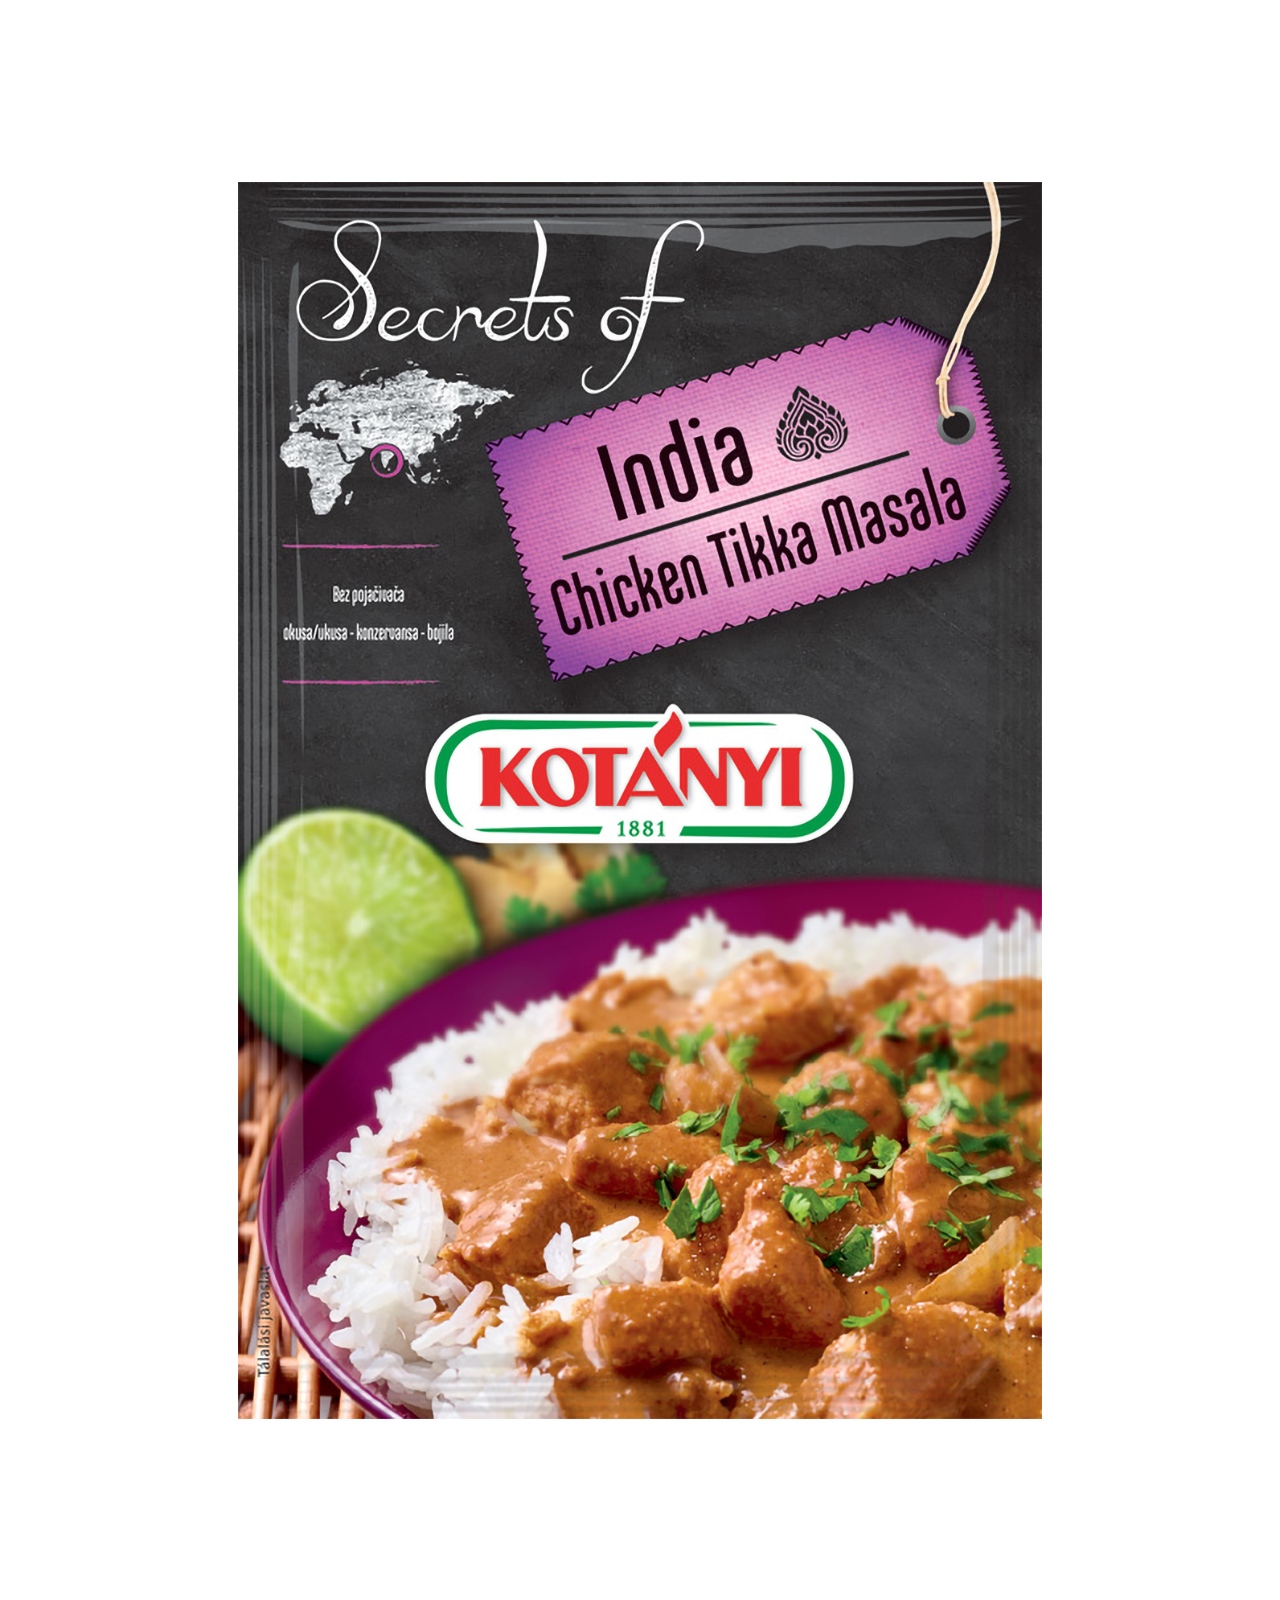 354908 Kotanyi Secrets Of India Chicken Tika Masala B2c Pouch